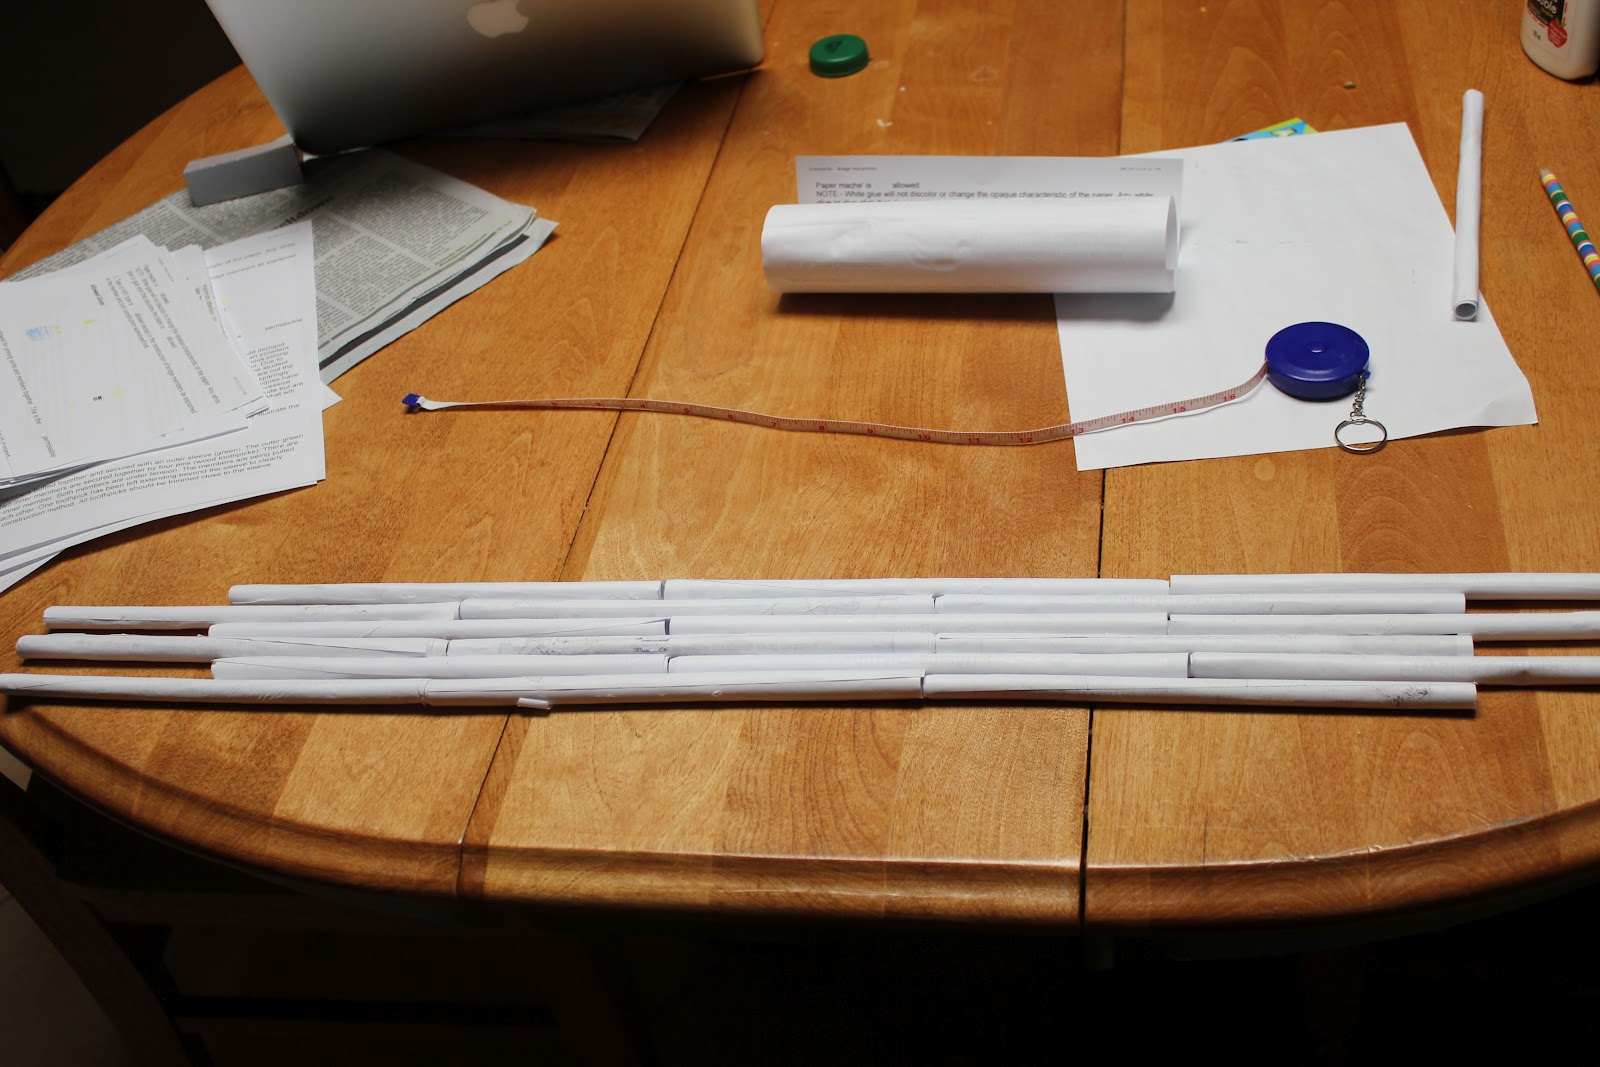 Then I Made Butt End Joints And Slip Tubes At Each Joint To Attach Tube Laminated The Whole Thing With Sheets Of Paper That Completed Deck